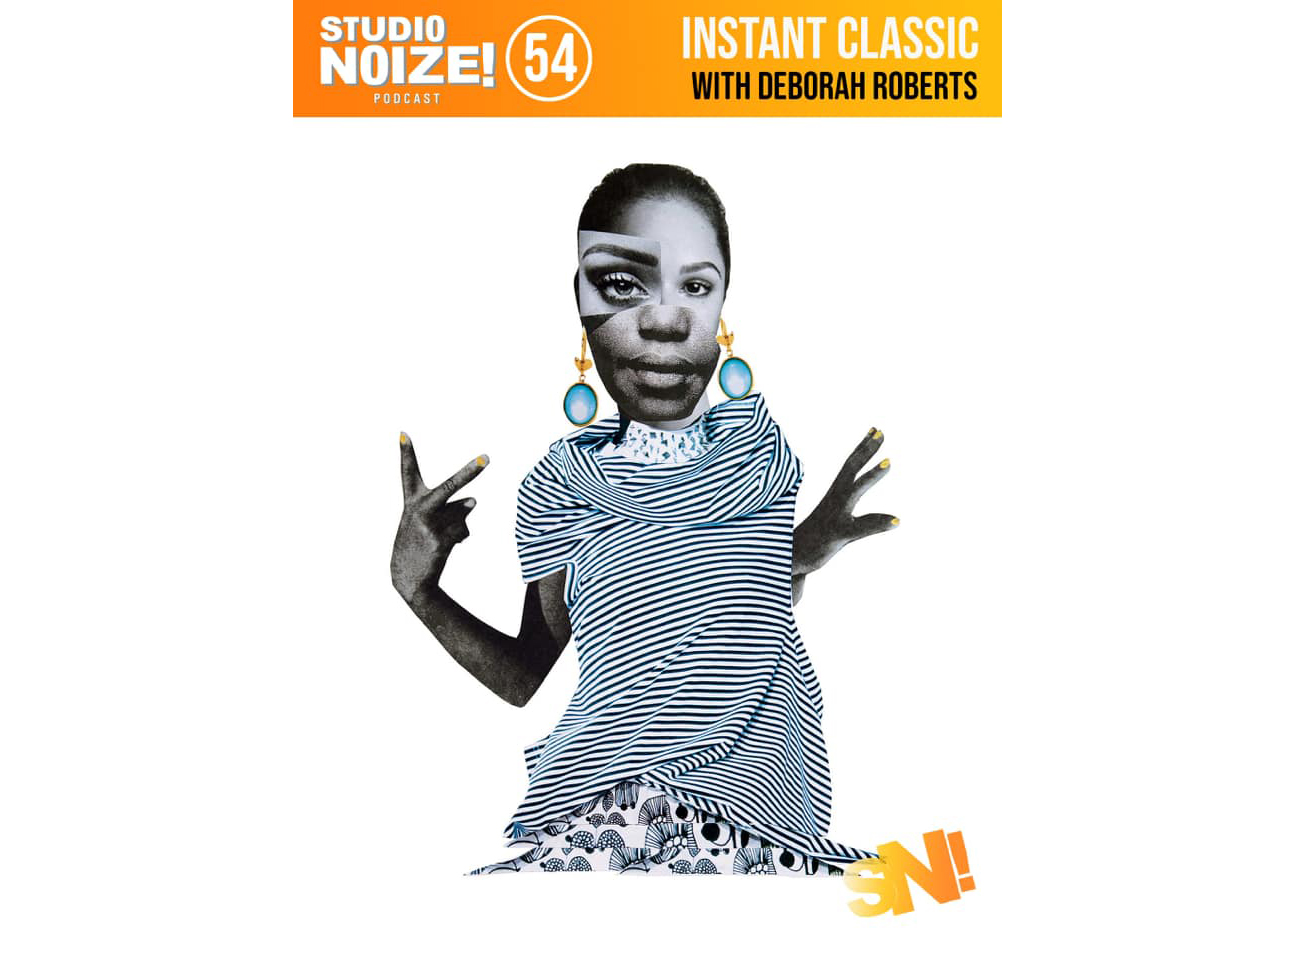 Studio Noize Podcast: Instant Classic With Deborah Roberts